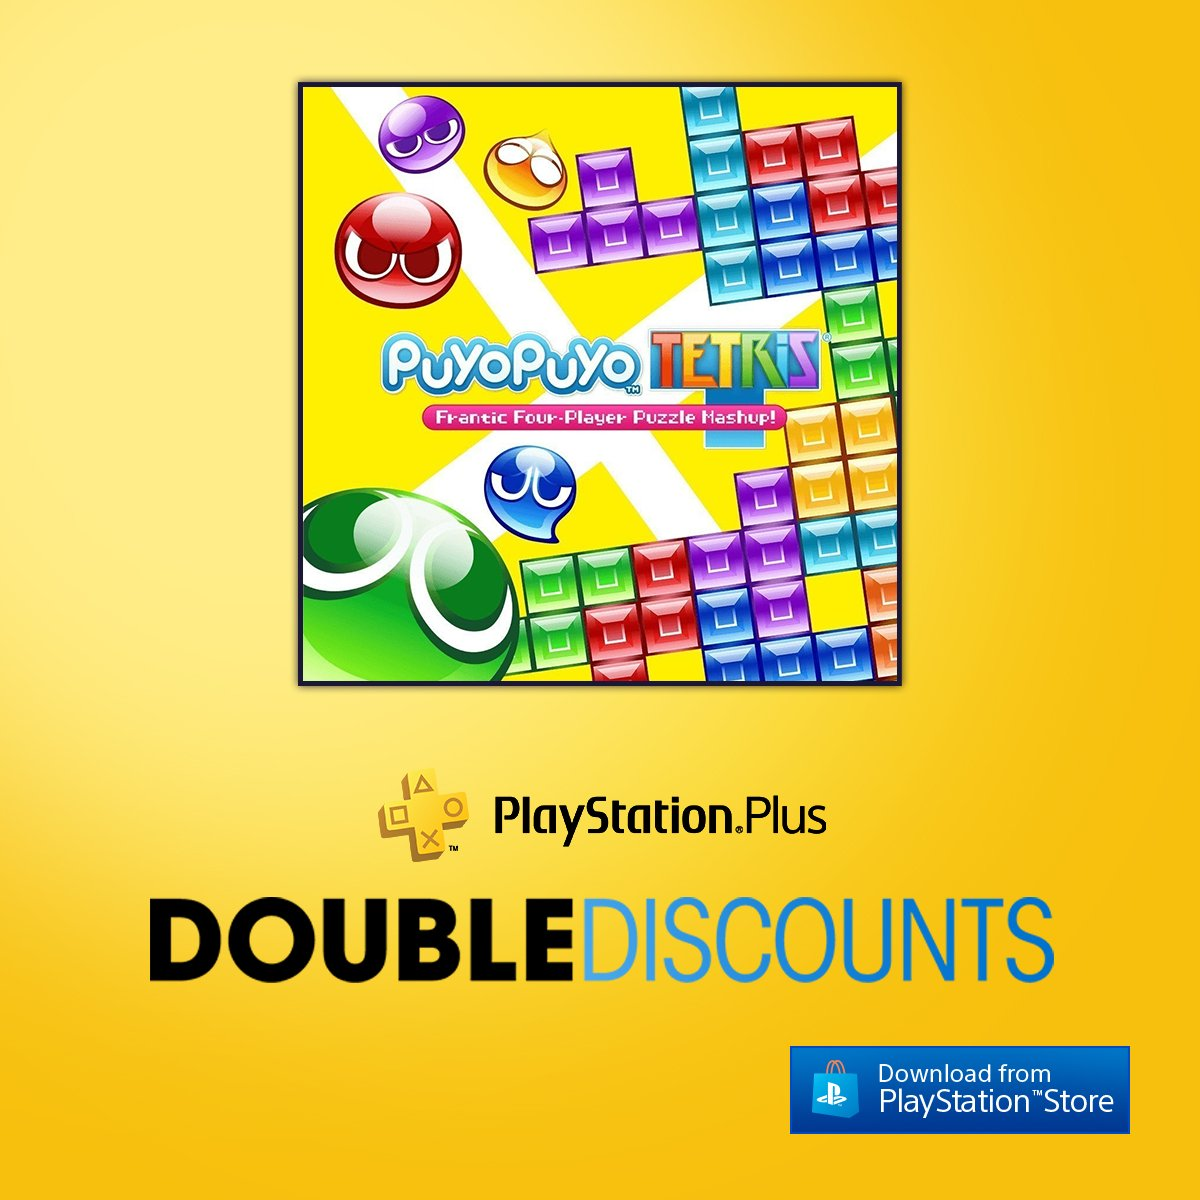 Escape into a world of puzzling adventures in Puyo Puyo Tetris, now 40% off for North American PS+ members!